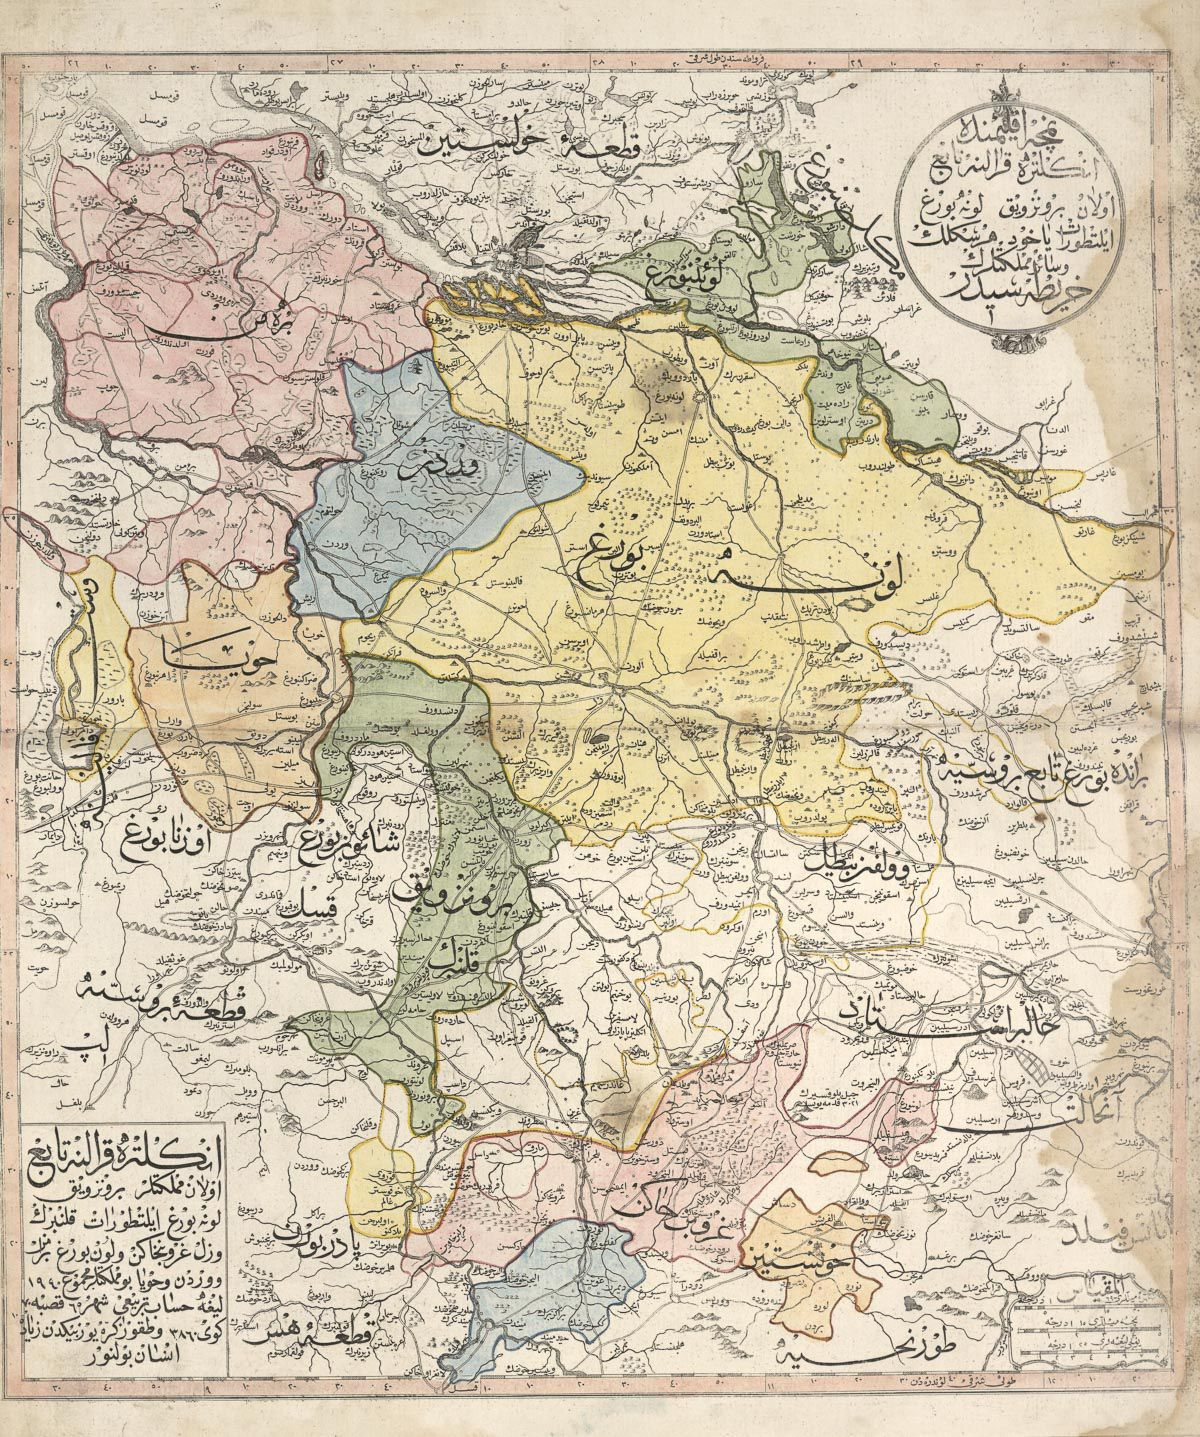 Germany (1803)